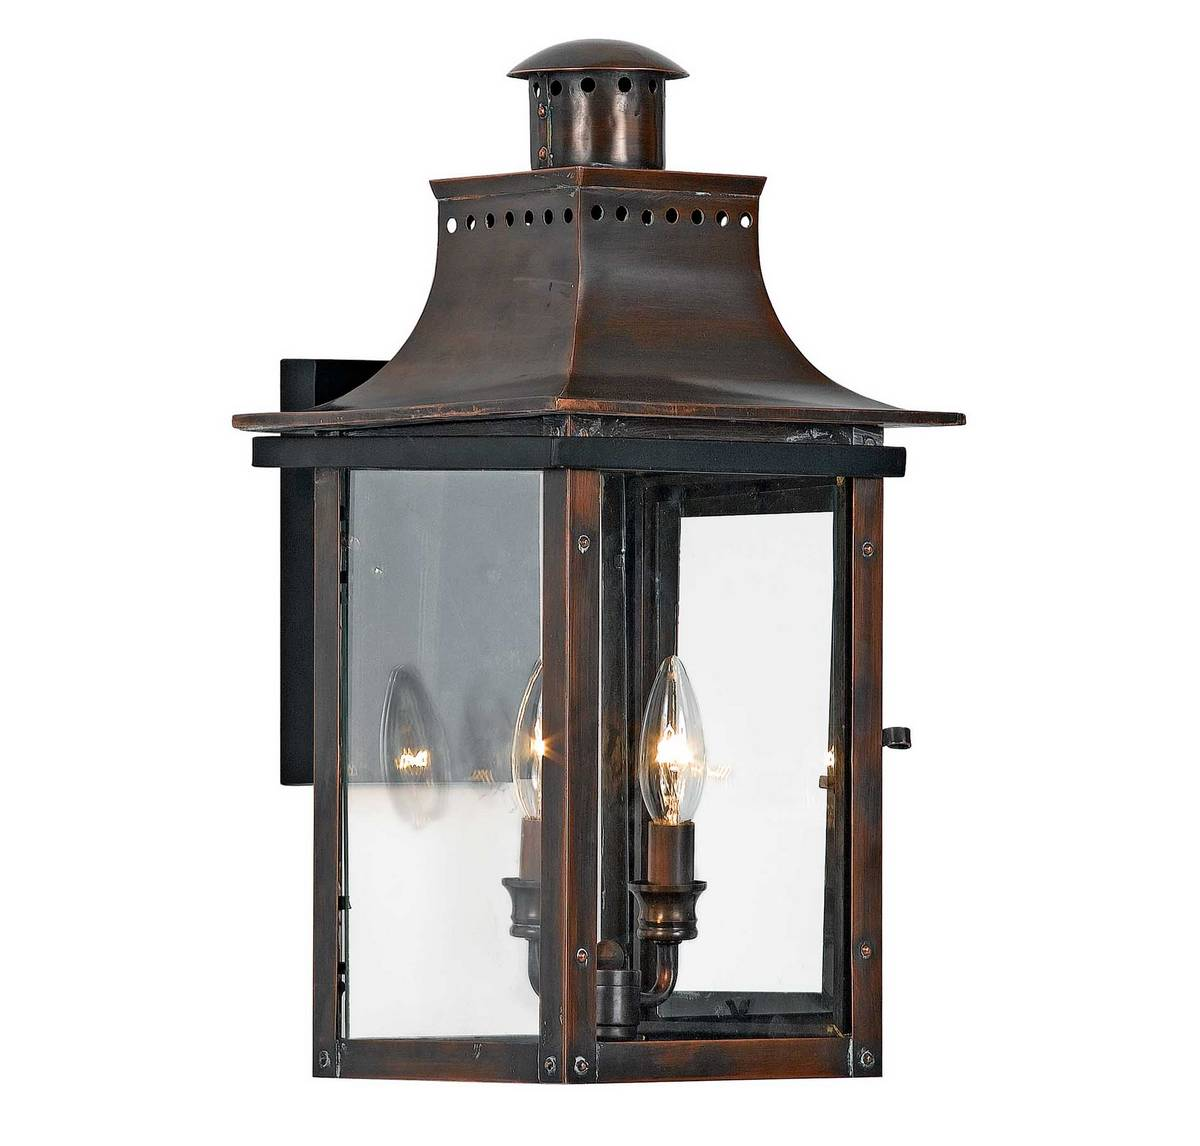 Quoizel Chalmers 10 Outdoor Lantern in Copper